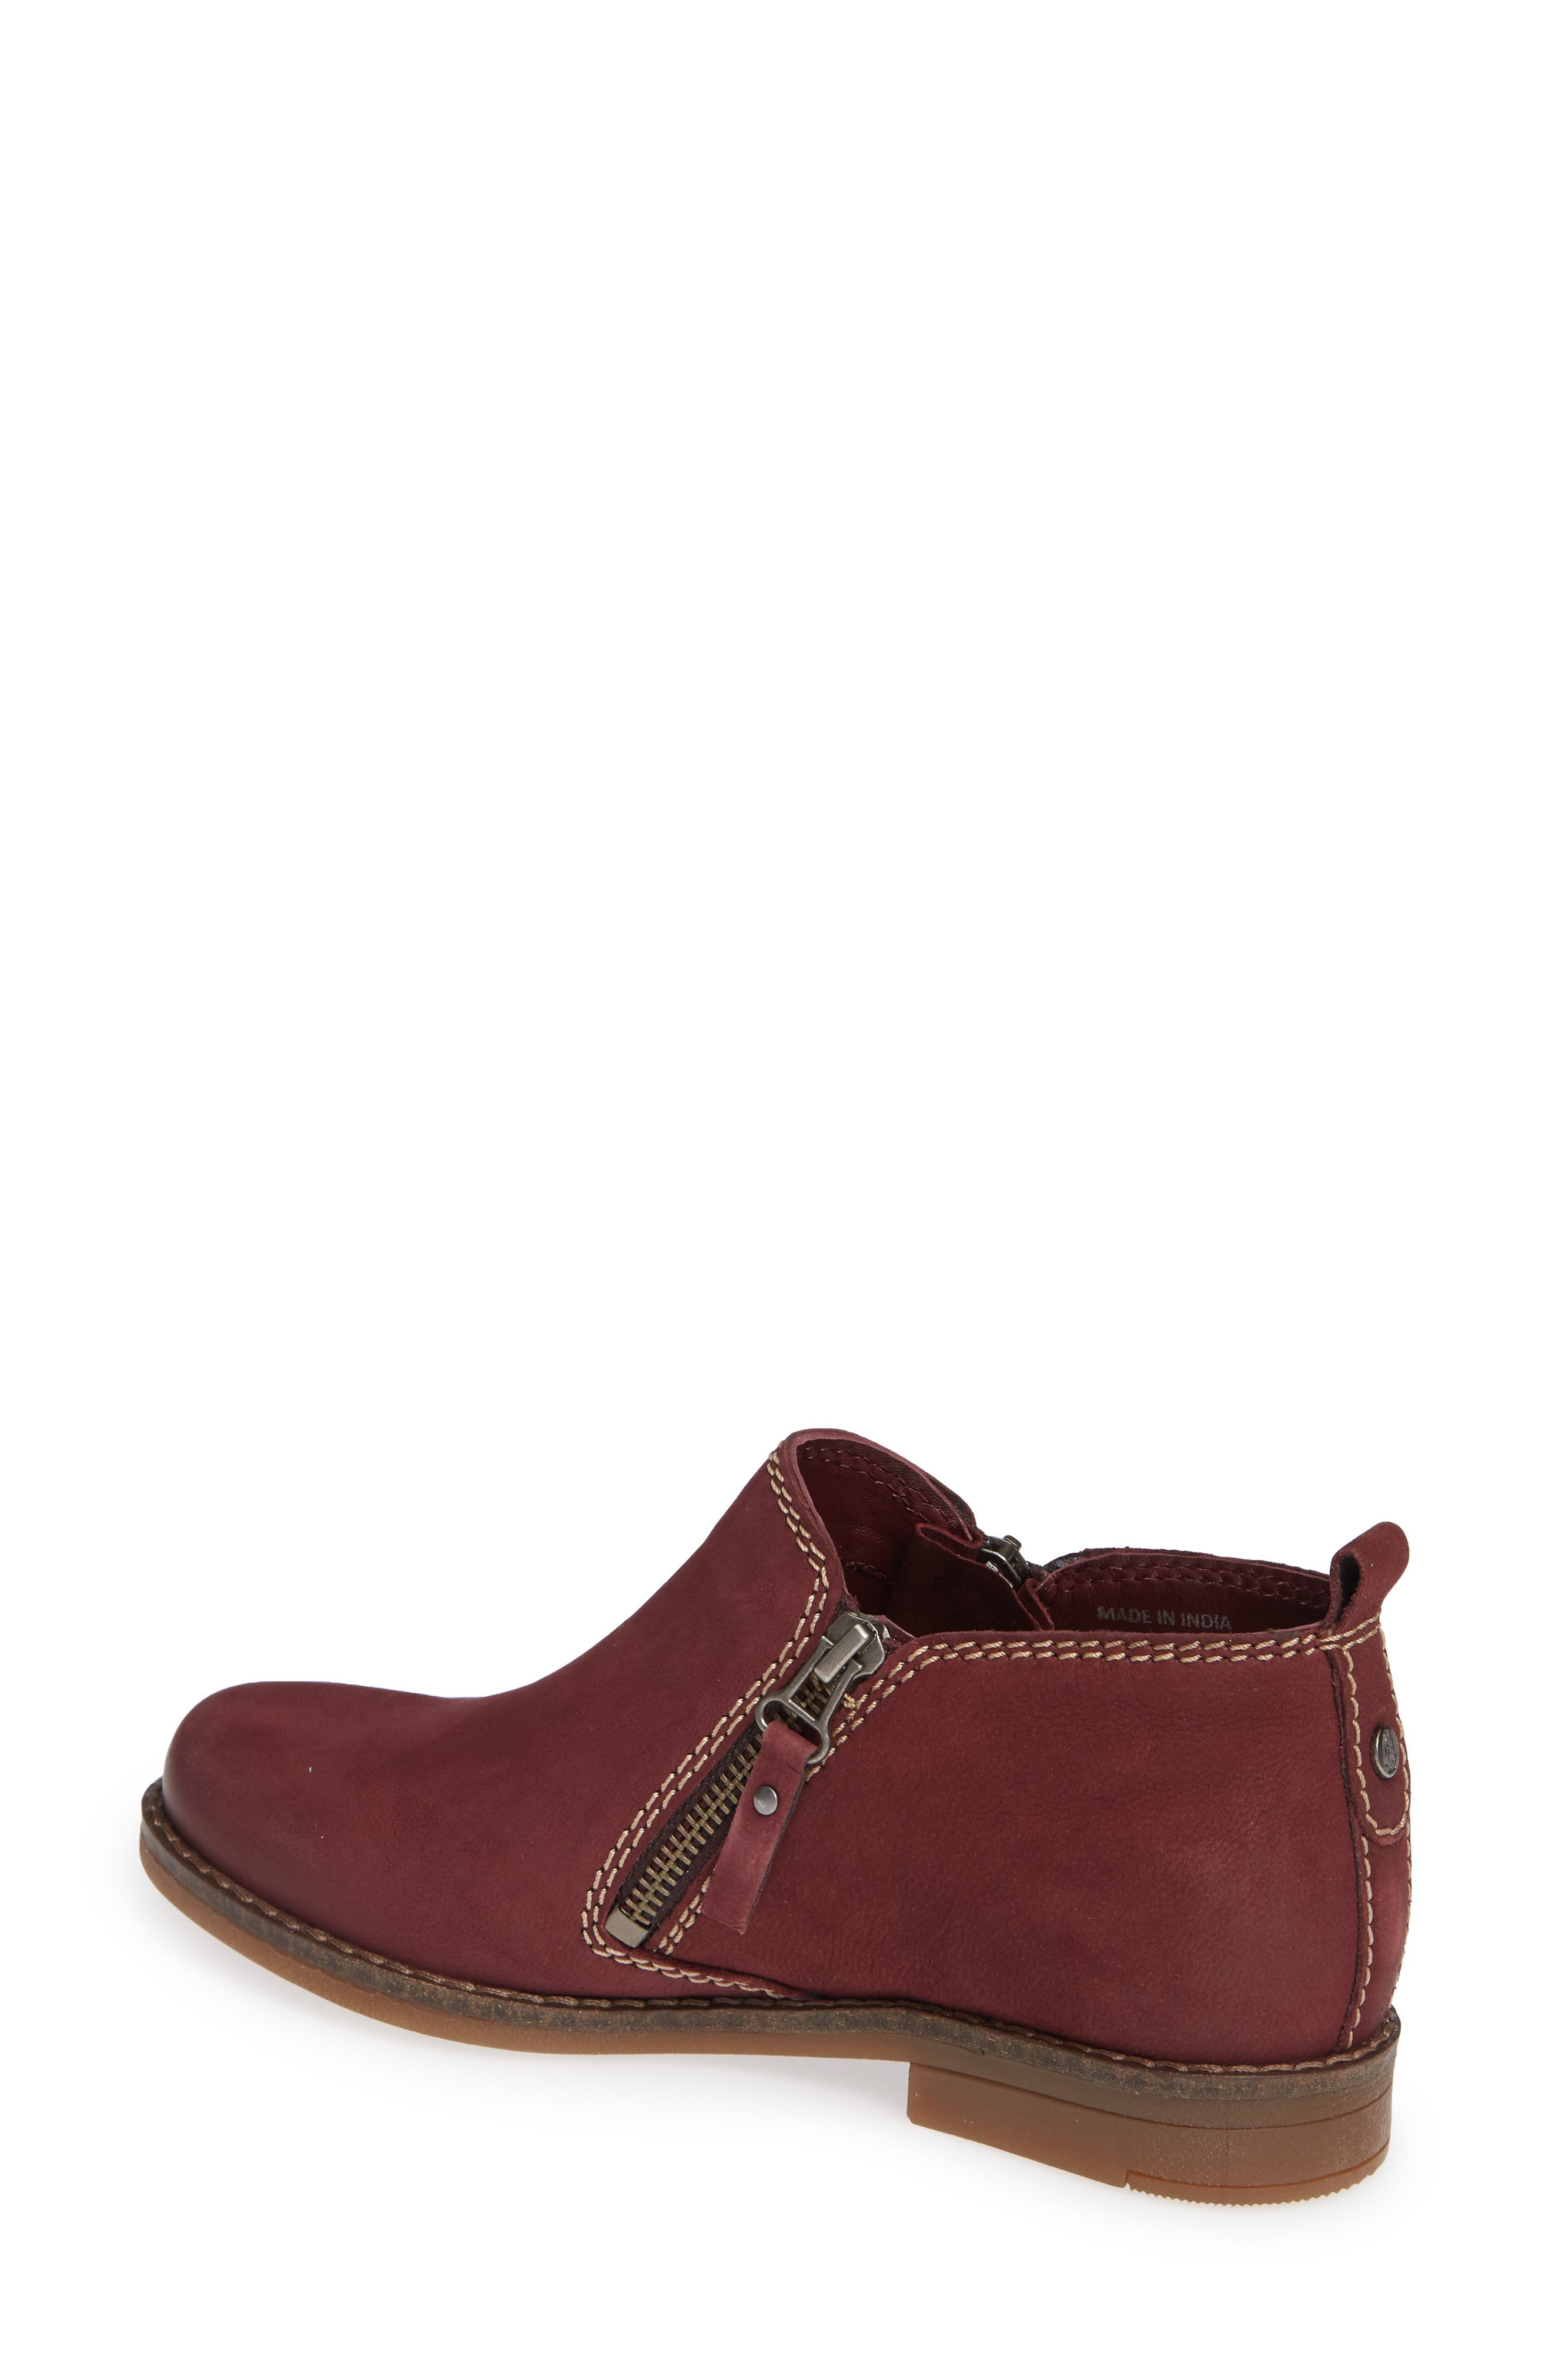 'Mazin Cayto' Bootie,                             Alternate thumbnail 2, color,                             Dark Wine Nubuck